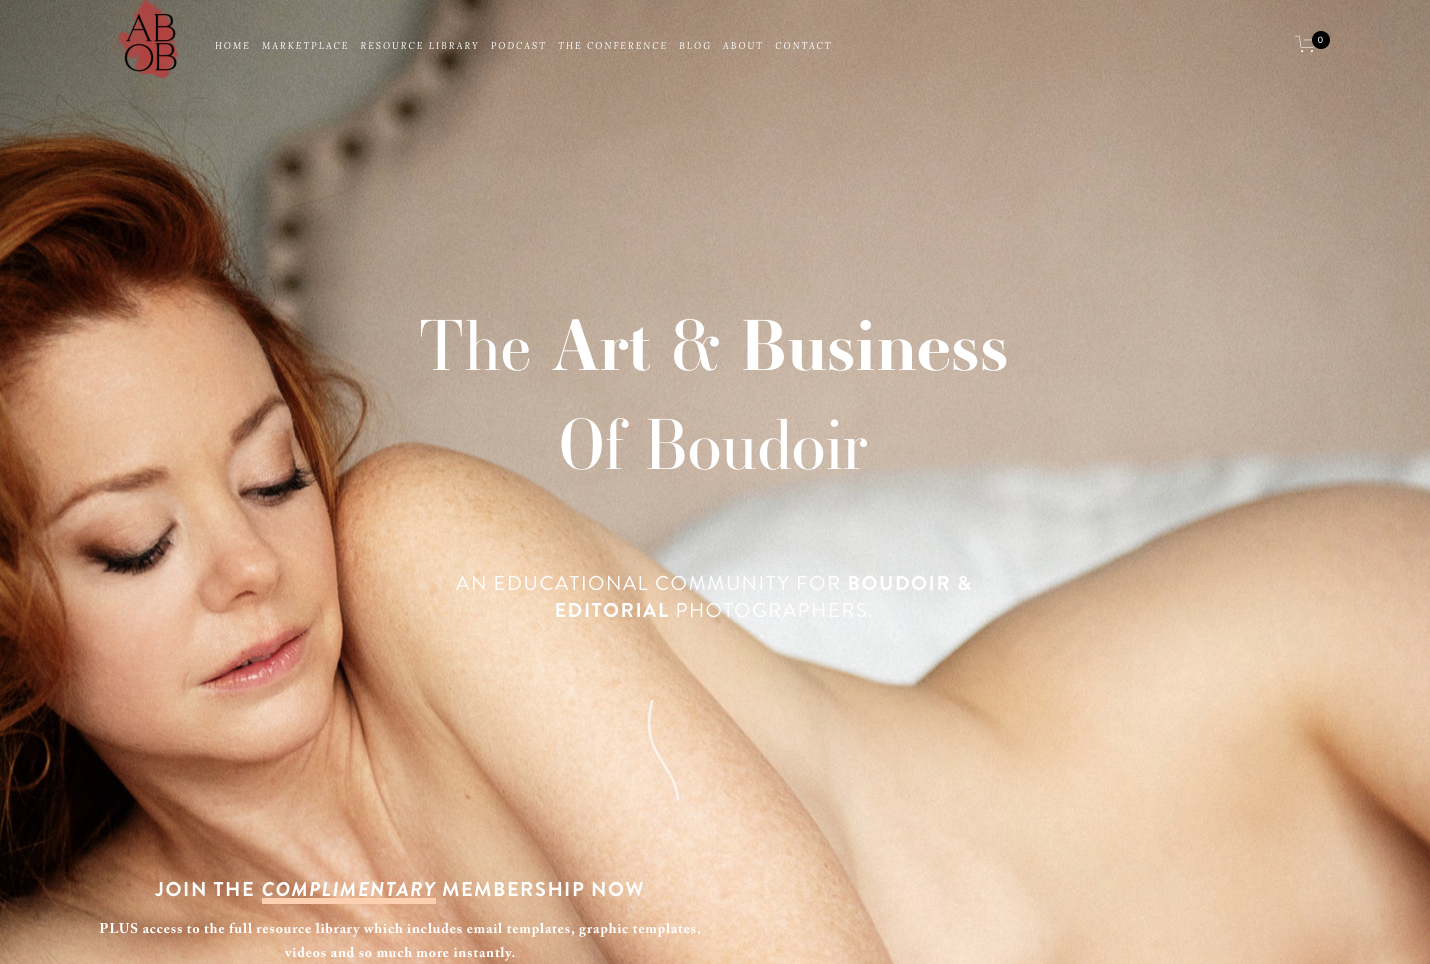 The Art & Business of Boudoir